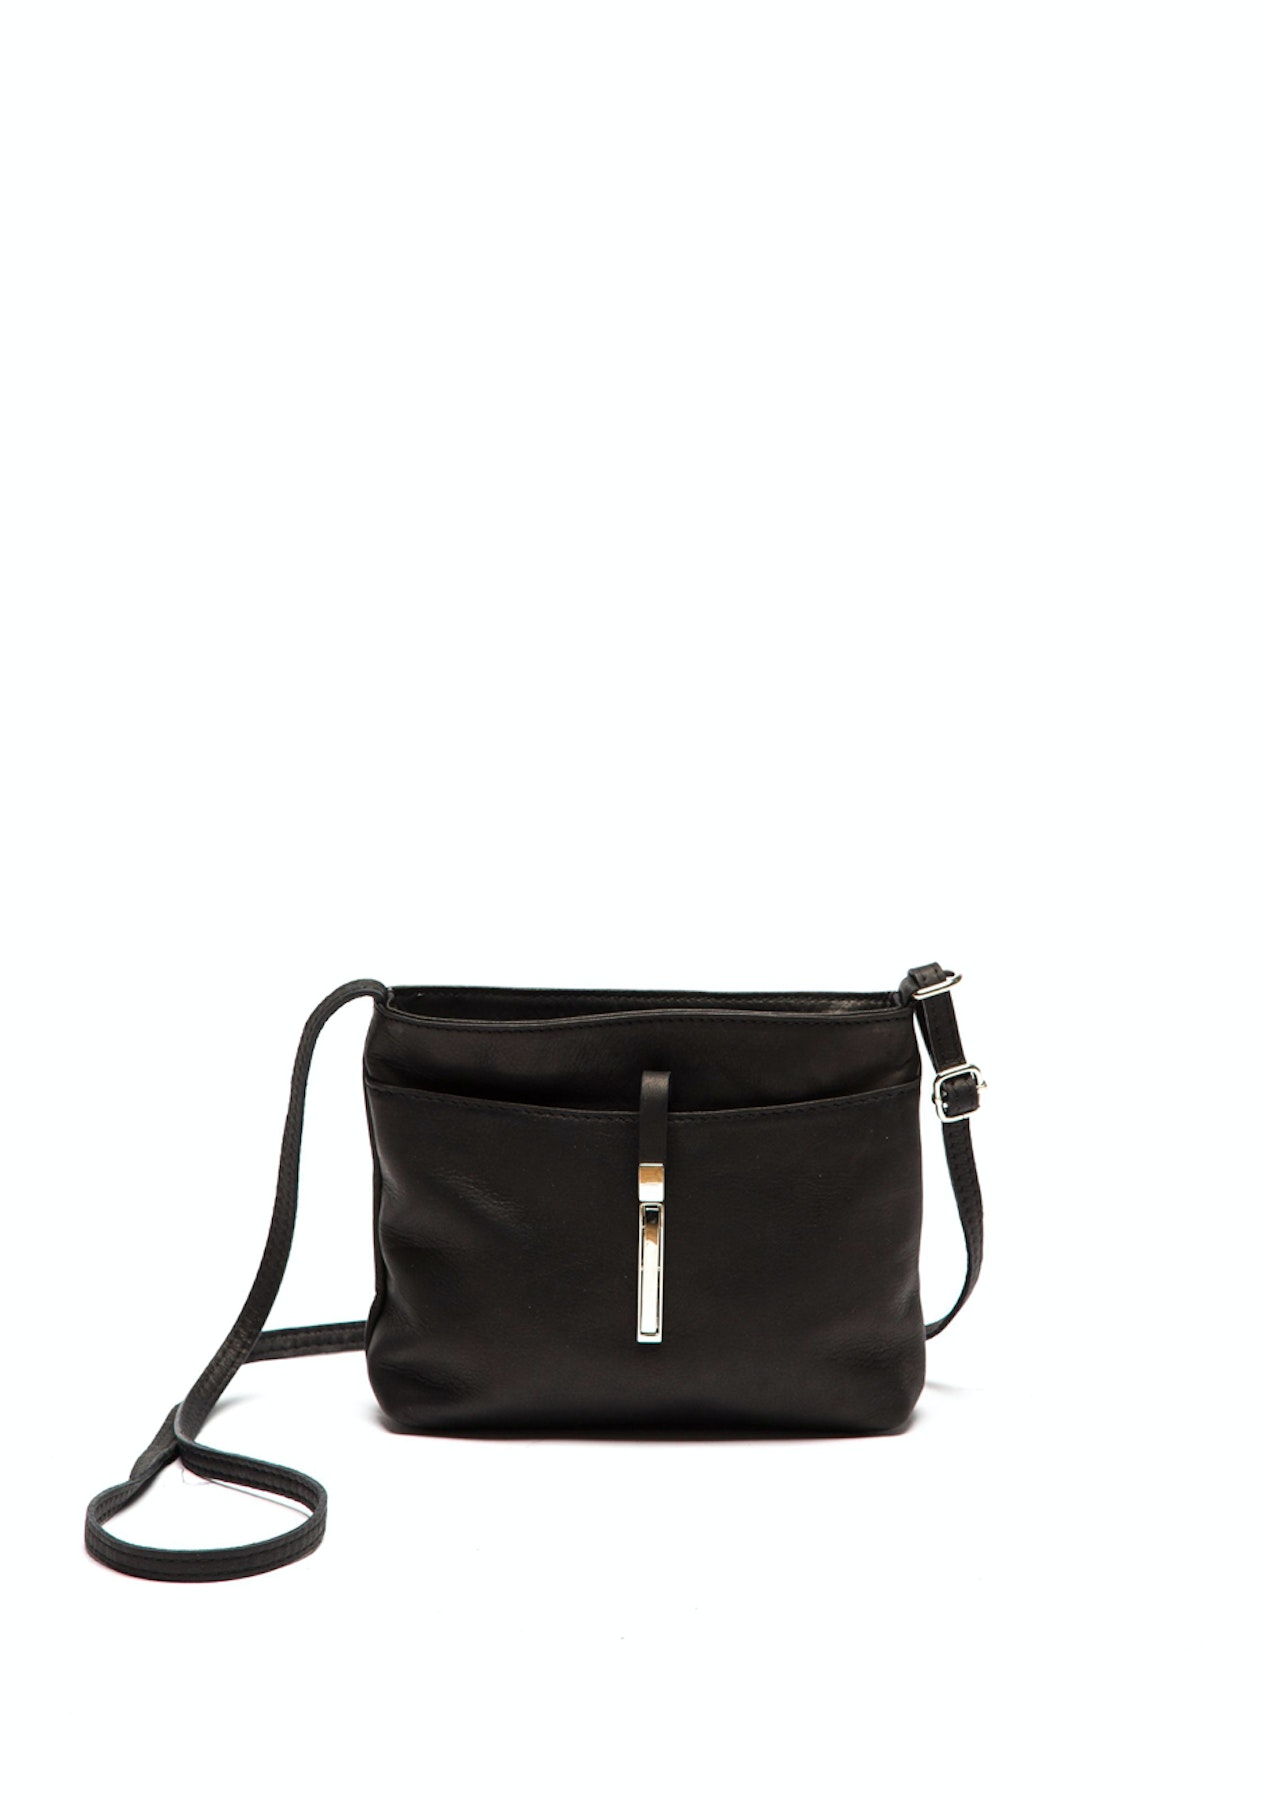 a52134d85449 Roberta M - Crossbody Bag - Nero - Italian Genuine Leather Bags up to 71%  Off - Onceit